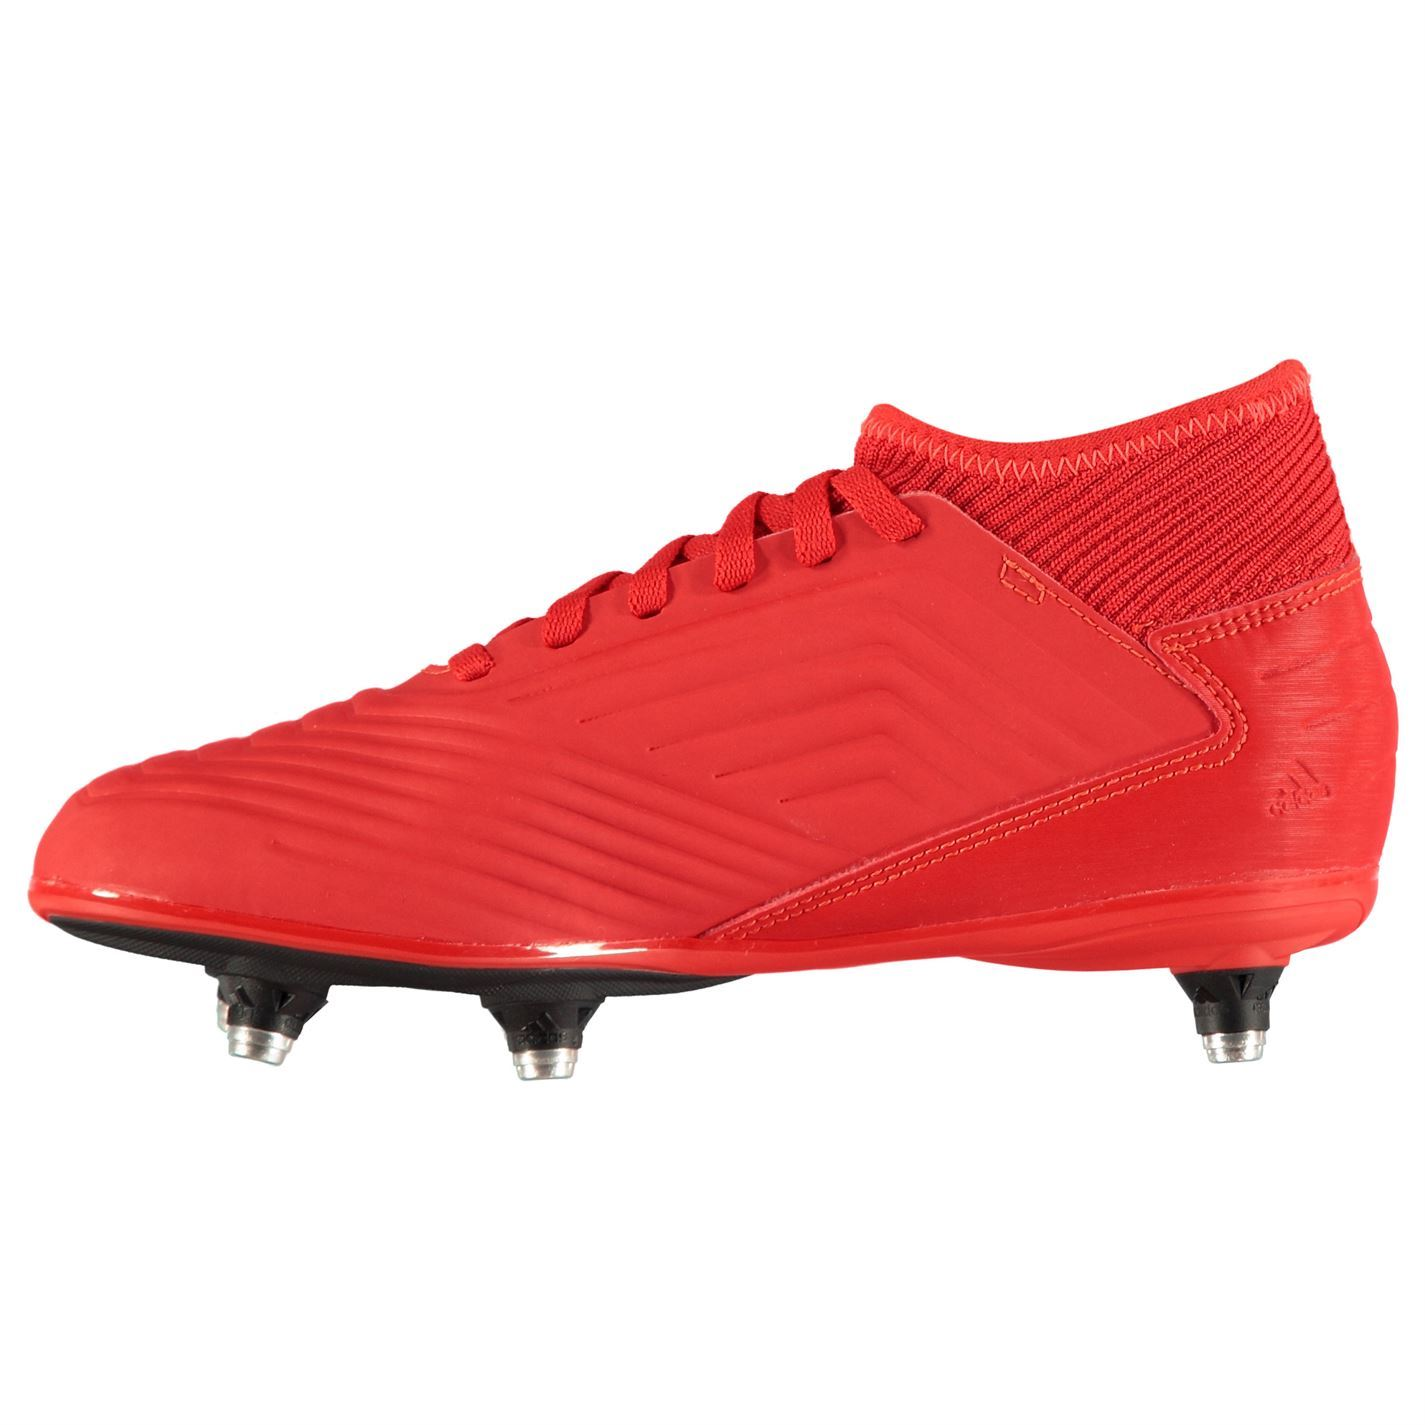 a6ccf93cce4 Details about adidas Predator 19.3 SG Soft Ground Football Boots Childs Red Soccer  Cleats